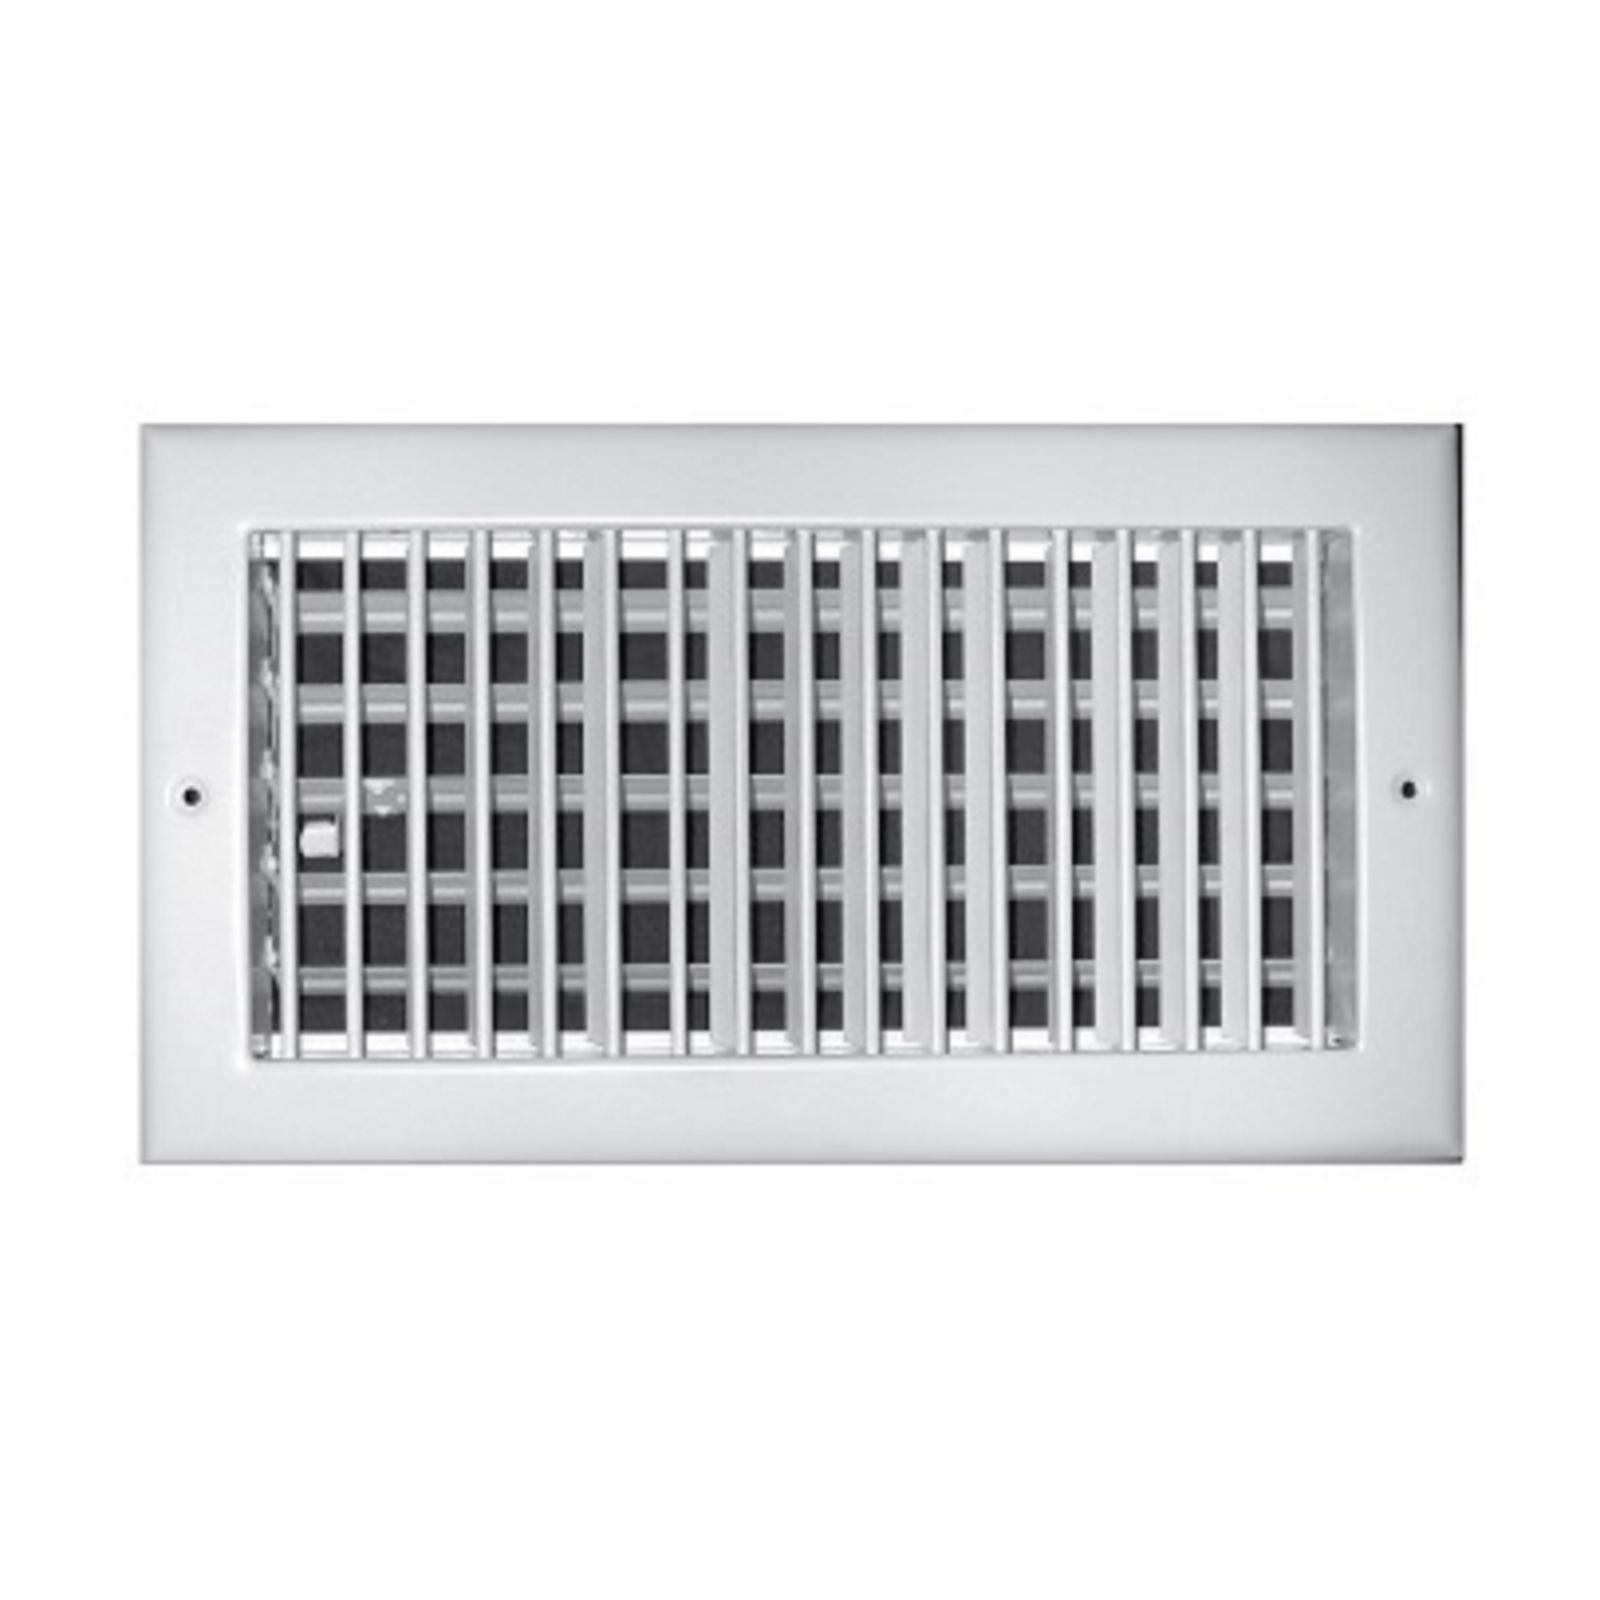 "TRUaire A210VM 12X08 - Aluminum Adjustable 1-Way Wall/Ceiling Register, Vertical, Multi Shutter Damper, White, 12"" X 08"""